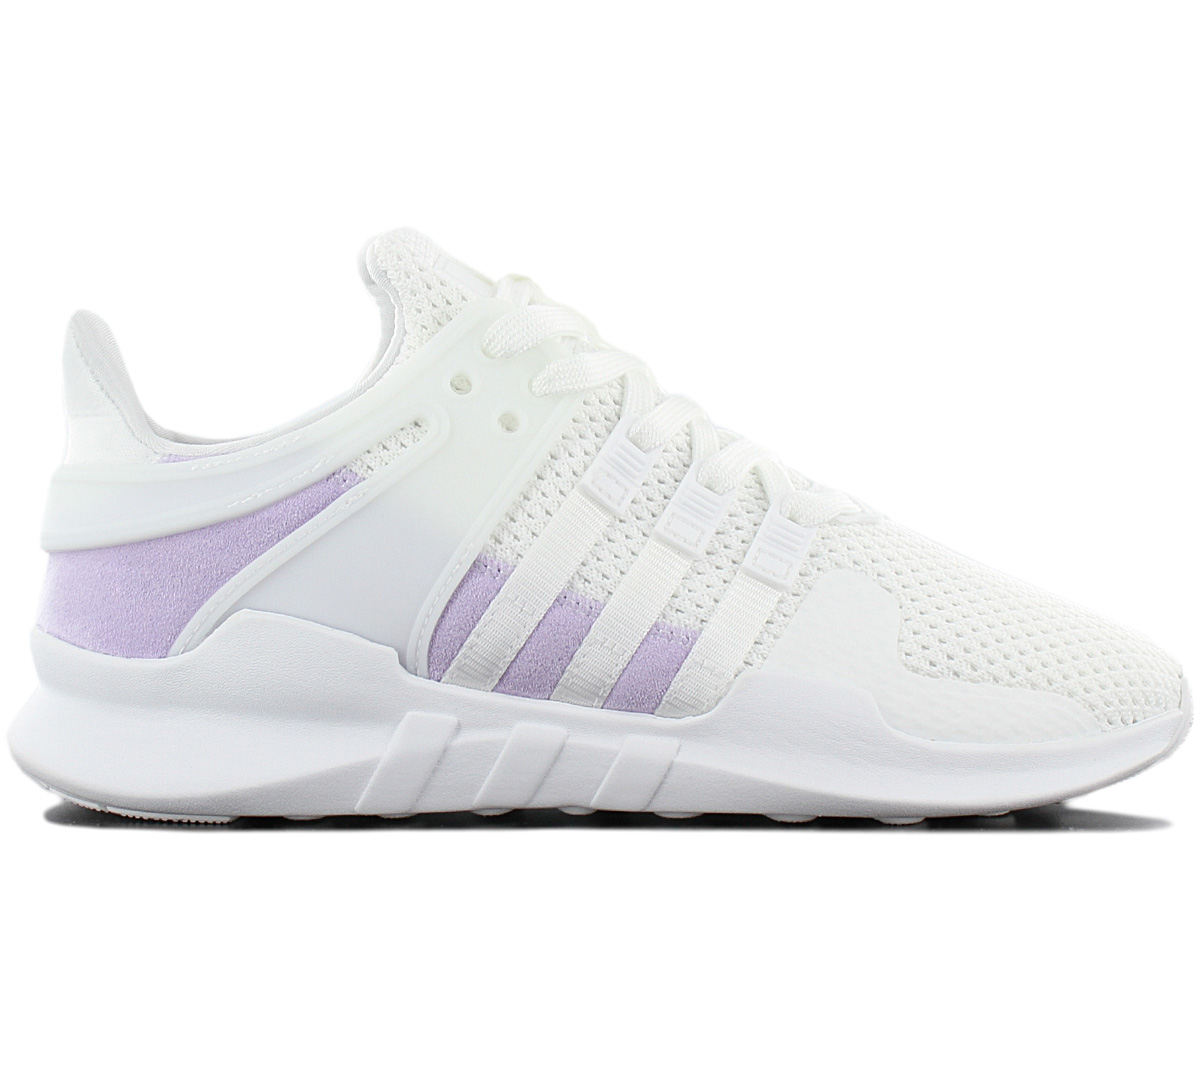 Details about Adidas Originals Equipment eqt Support ADV W BY9111 Womens Trainer Shoes White show original title